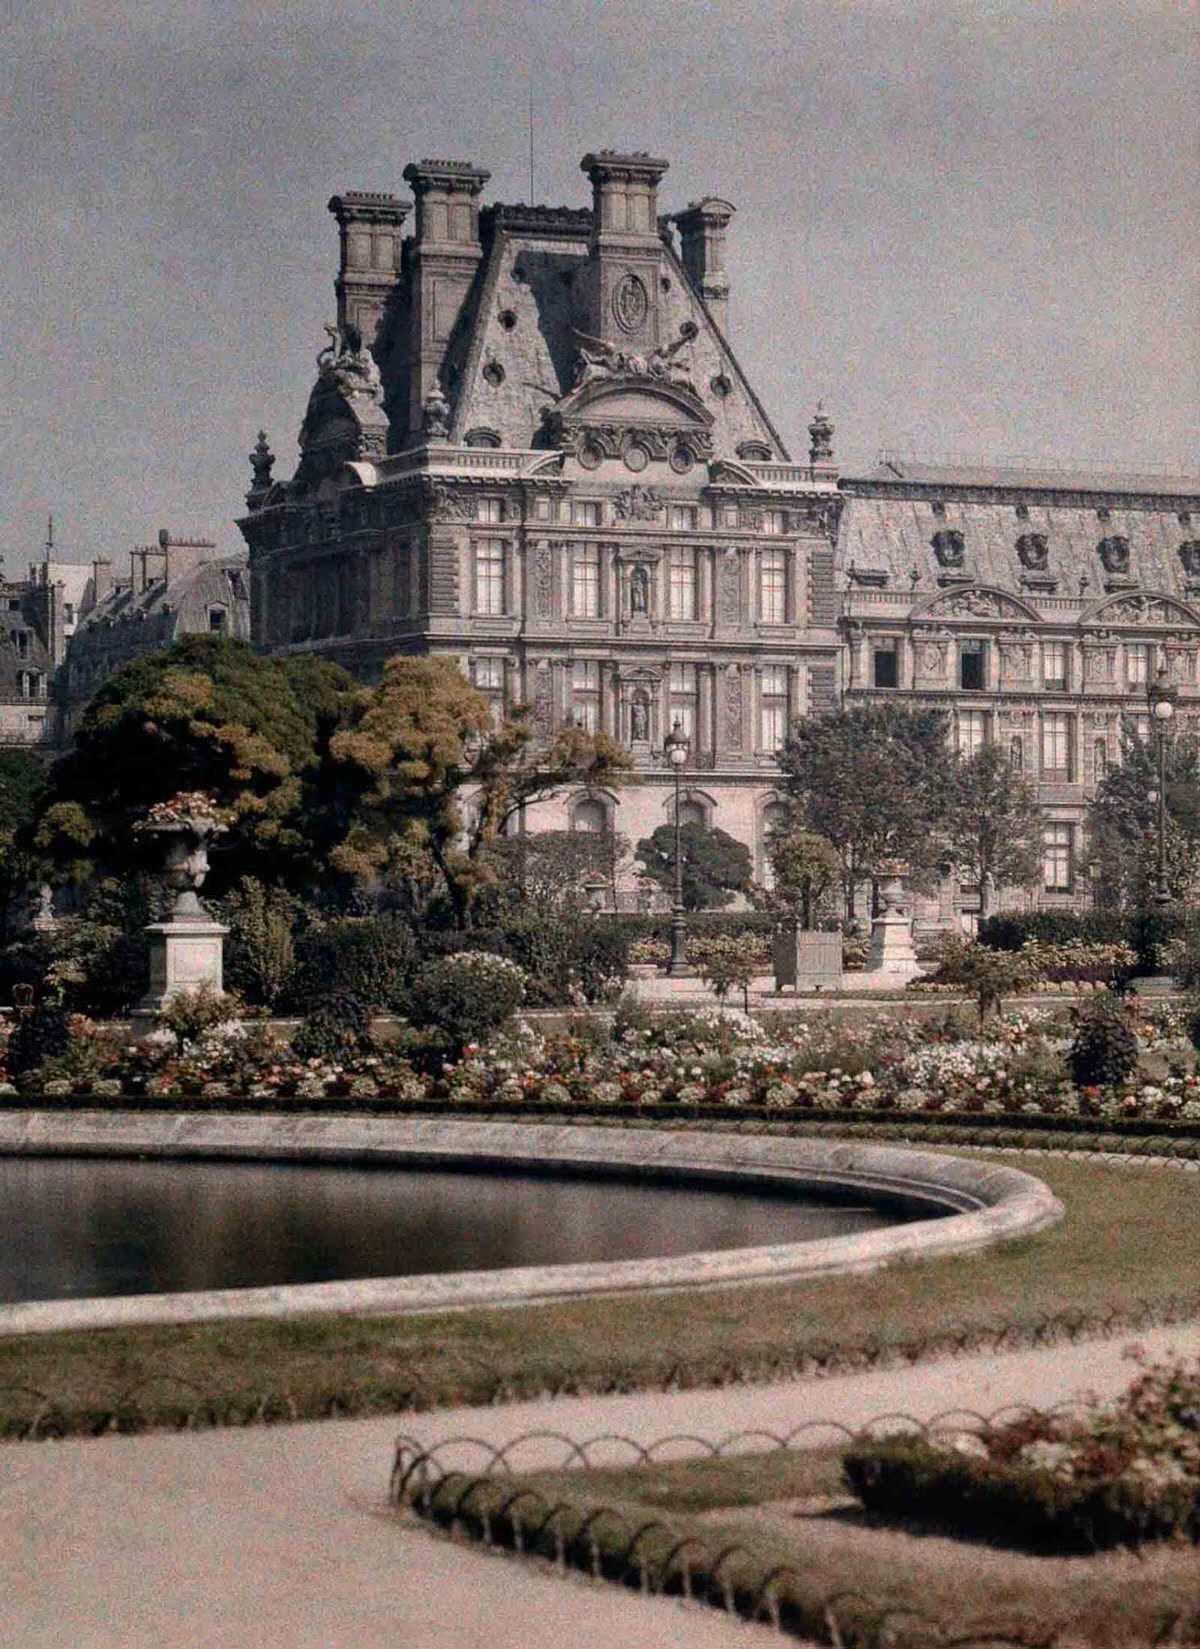 The Museum of the Decorative Arts in the Tuileries.